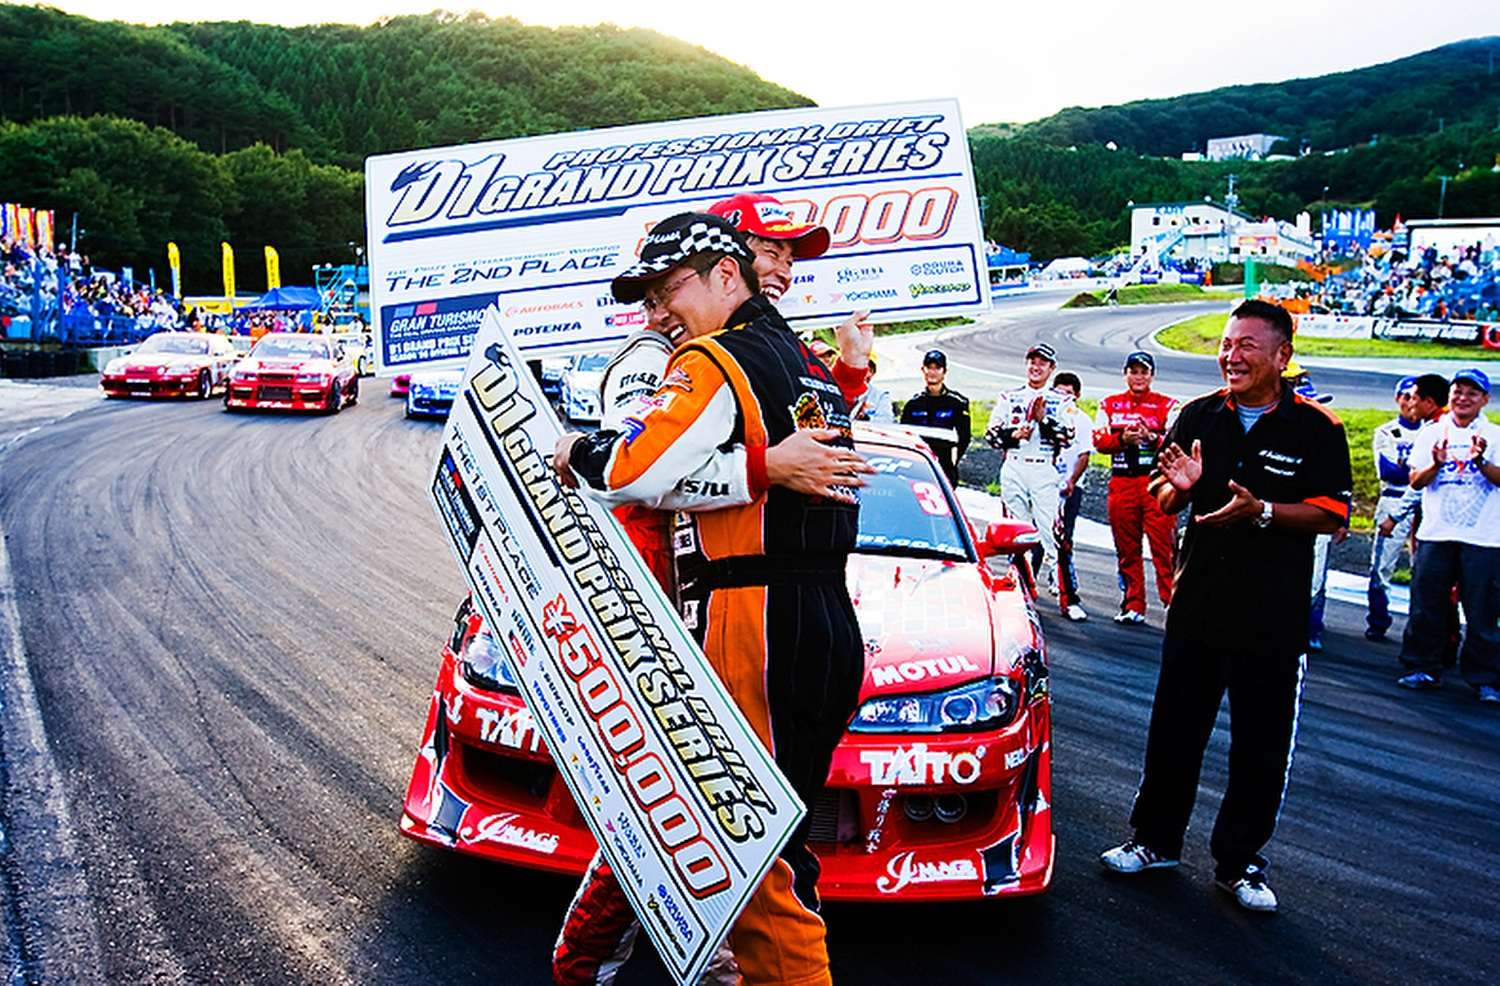 14.kumakubo_team_orange_d1gp.jpg